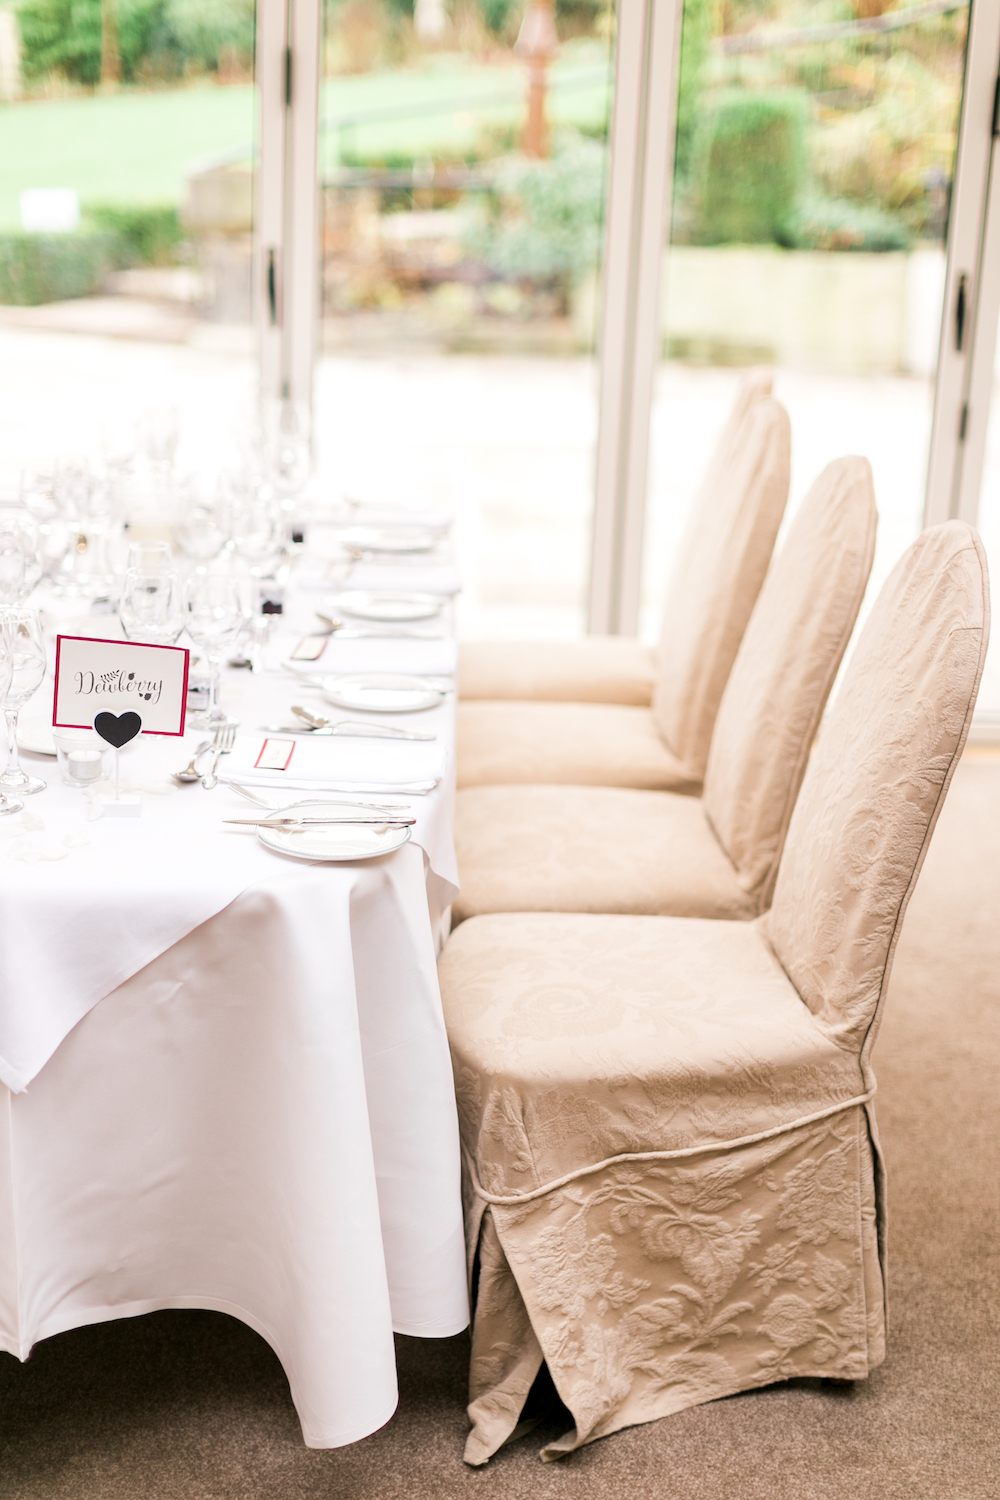 red-and-white-wedding-lancashire-wedding-gibbon-bridge-hotel-in-preston-winter-wedding-jam-table-names-hannah-k-photography-35